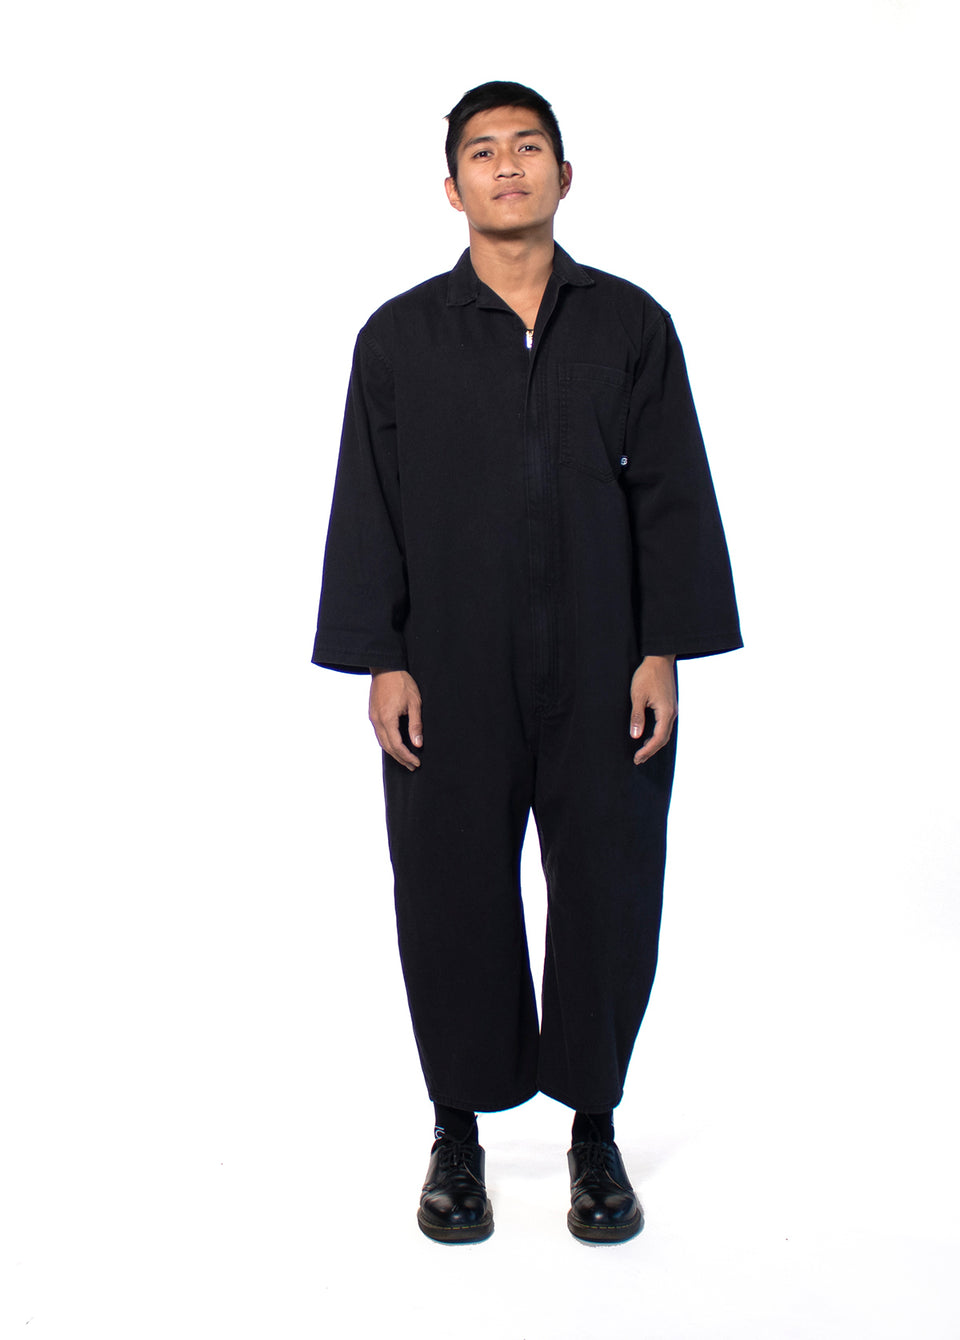 69 Long Sleeve Jumpsuit - 69